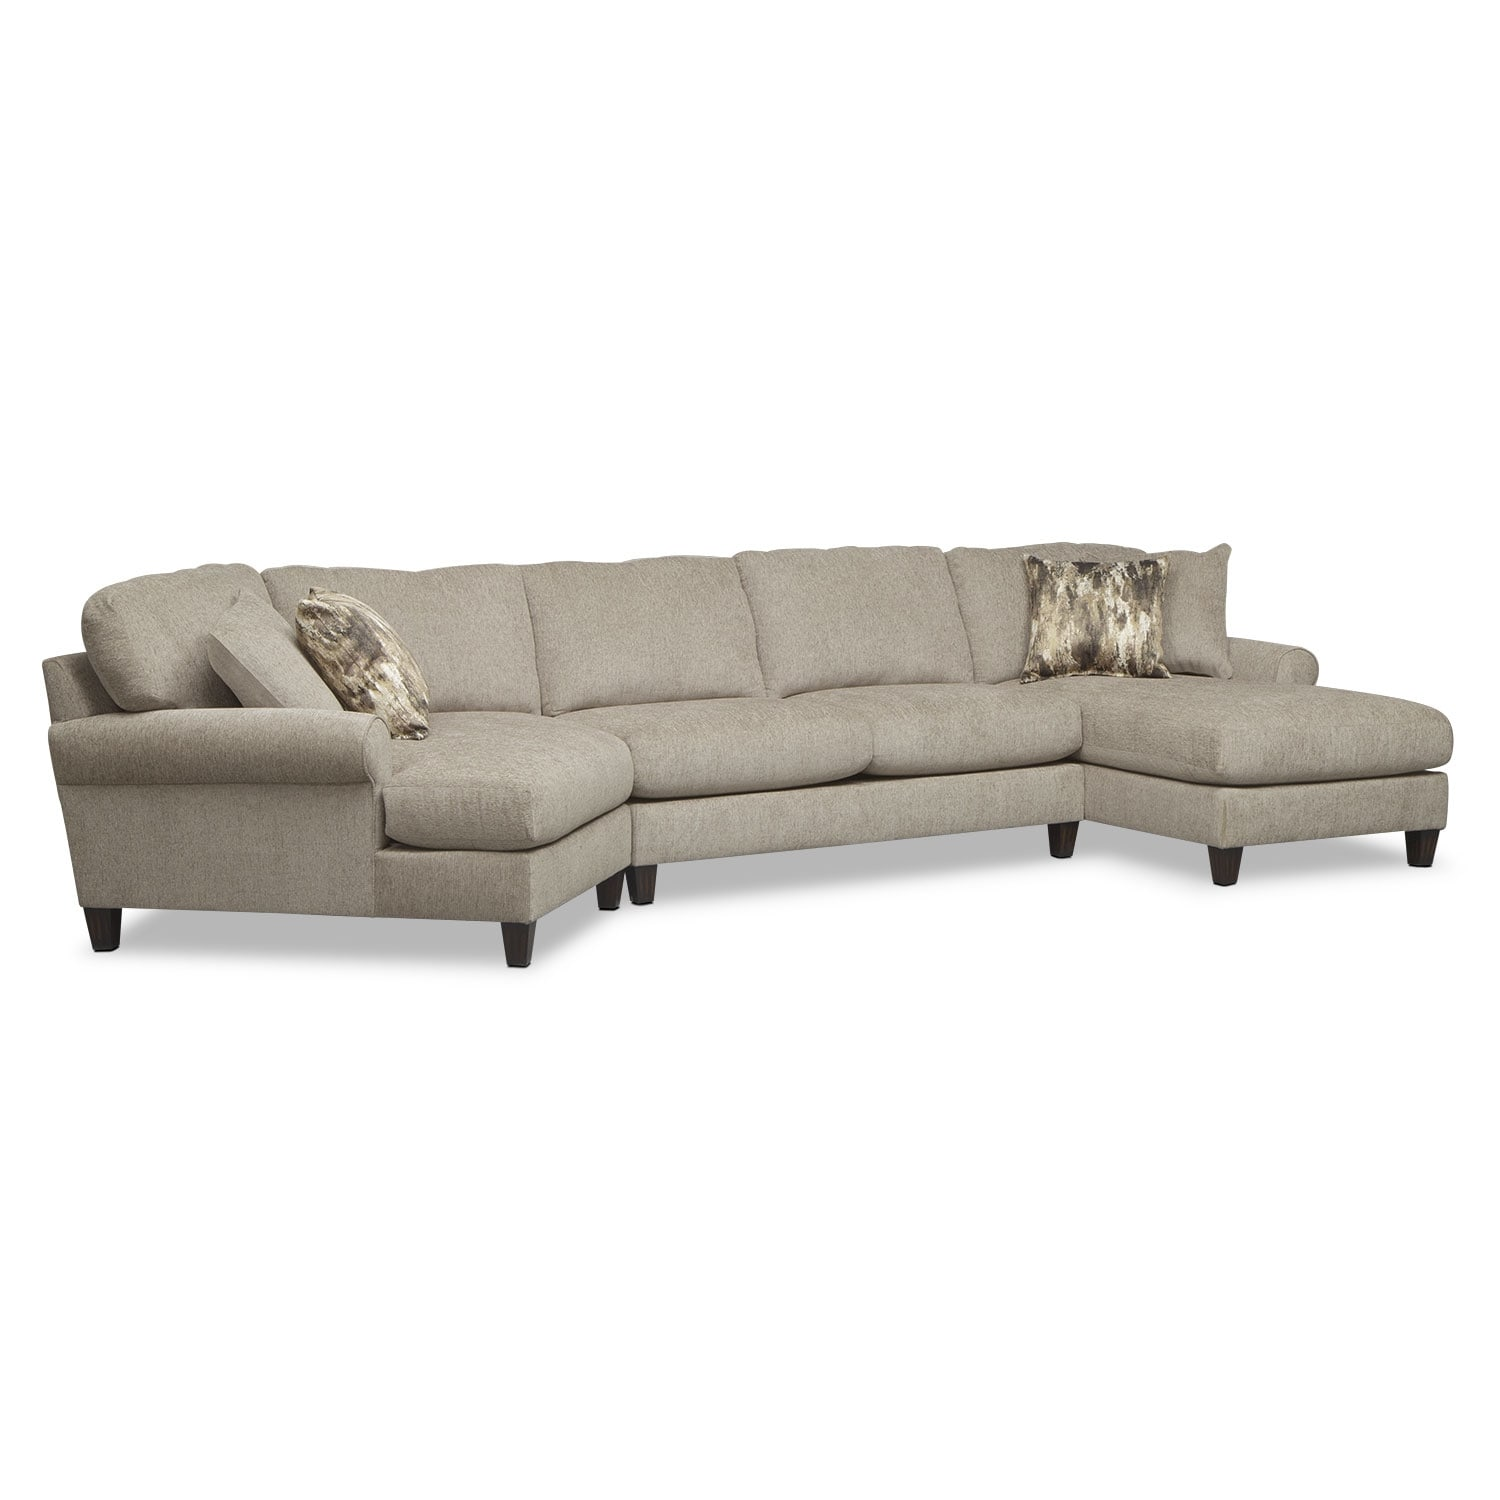 Karma 3-Piece Sectional with Left-Facing Cuddler and Right-Facing Chaise - Mink